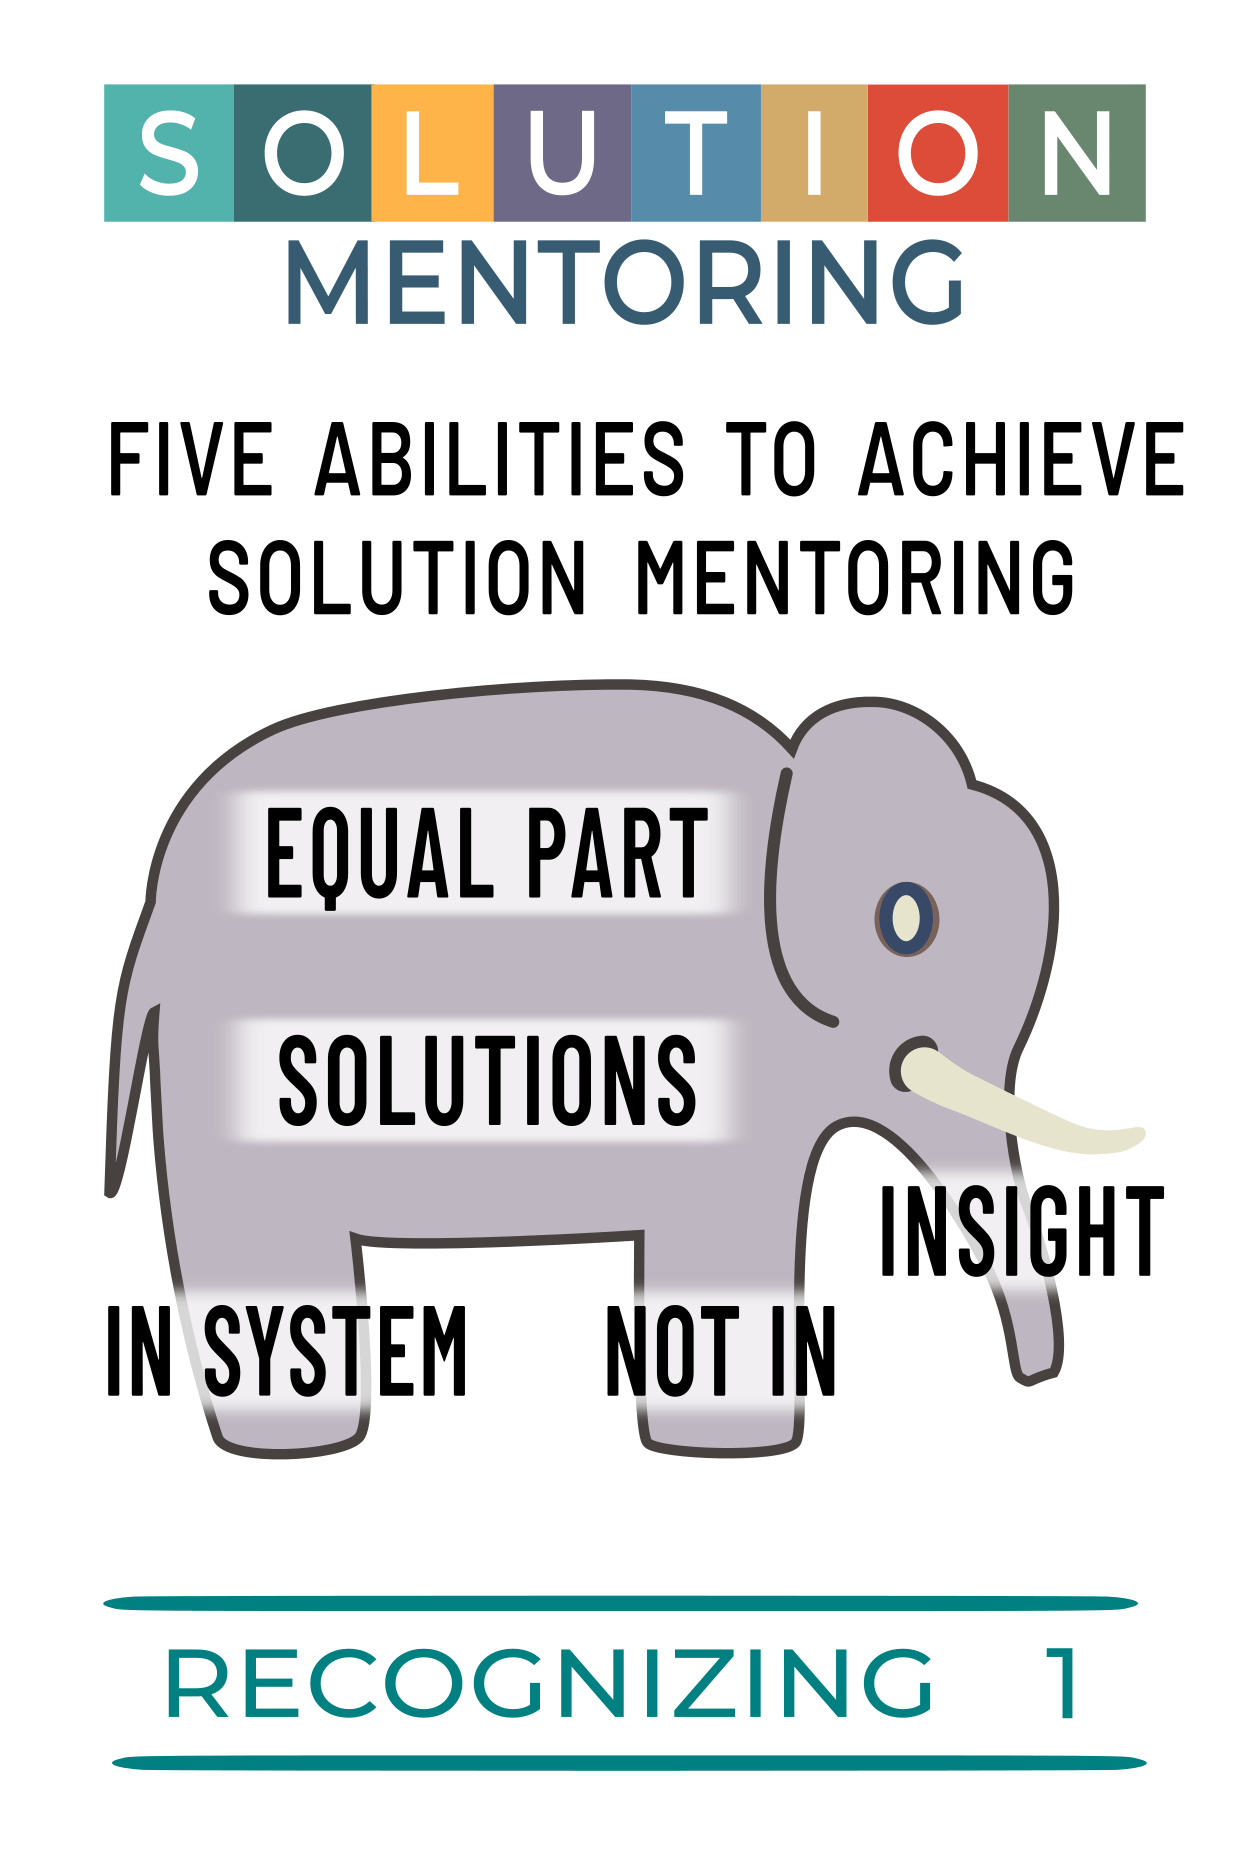 recognizing solution mentoring